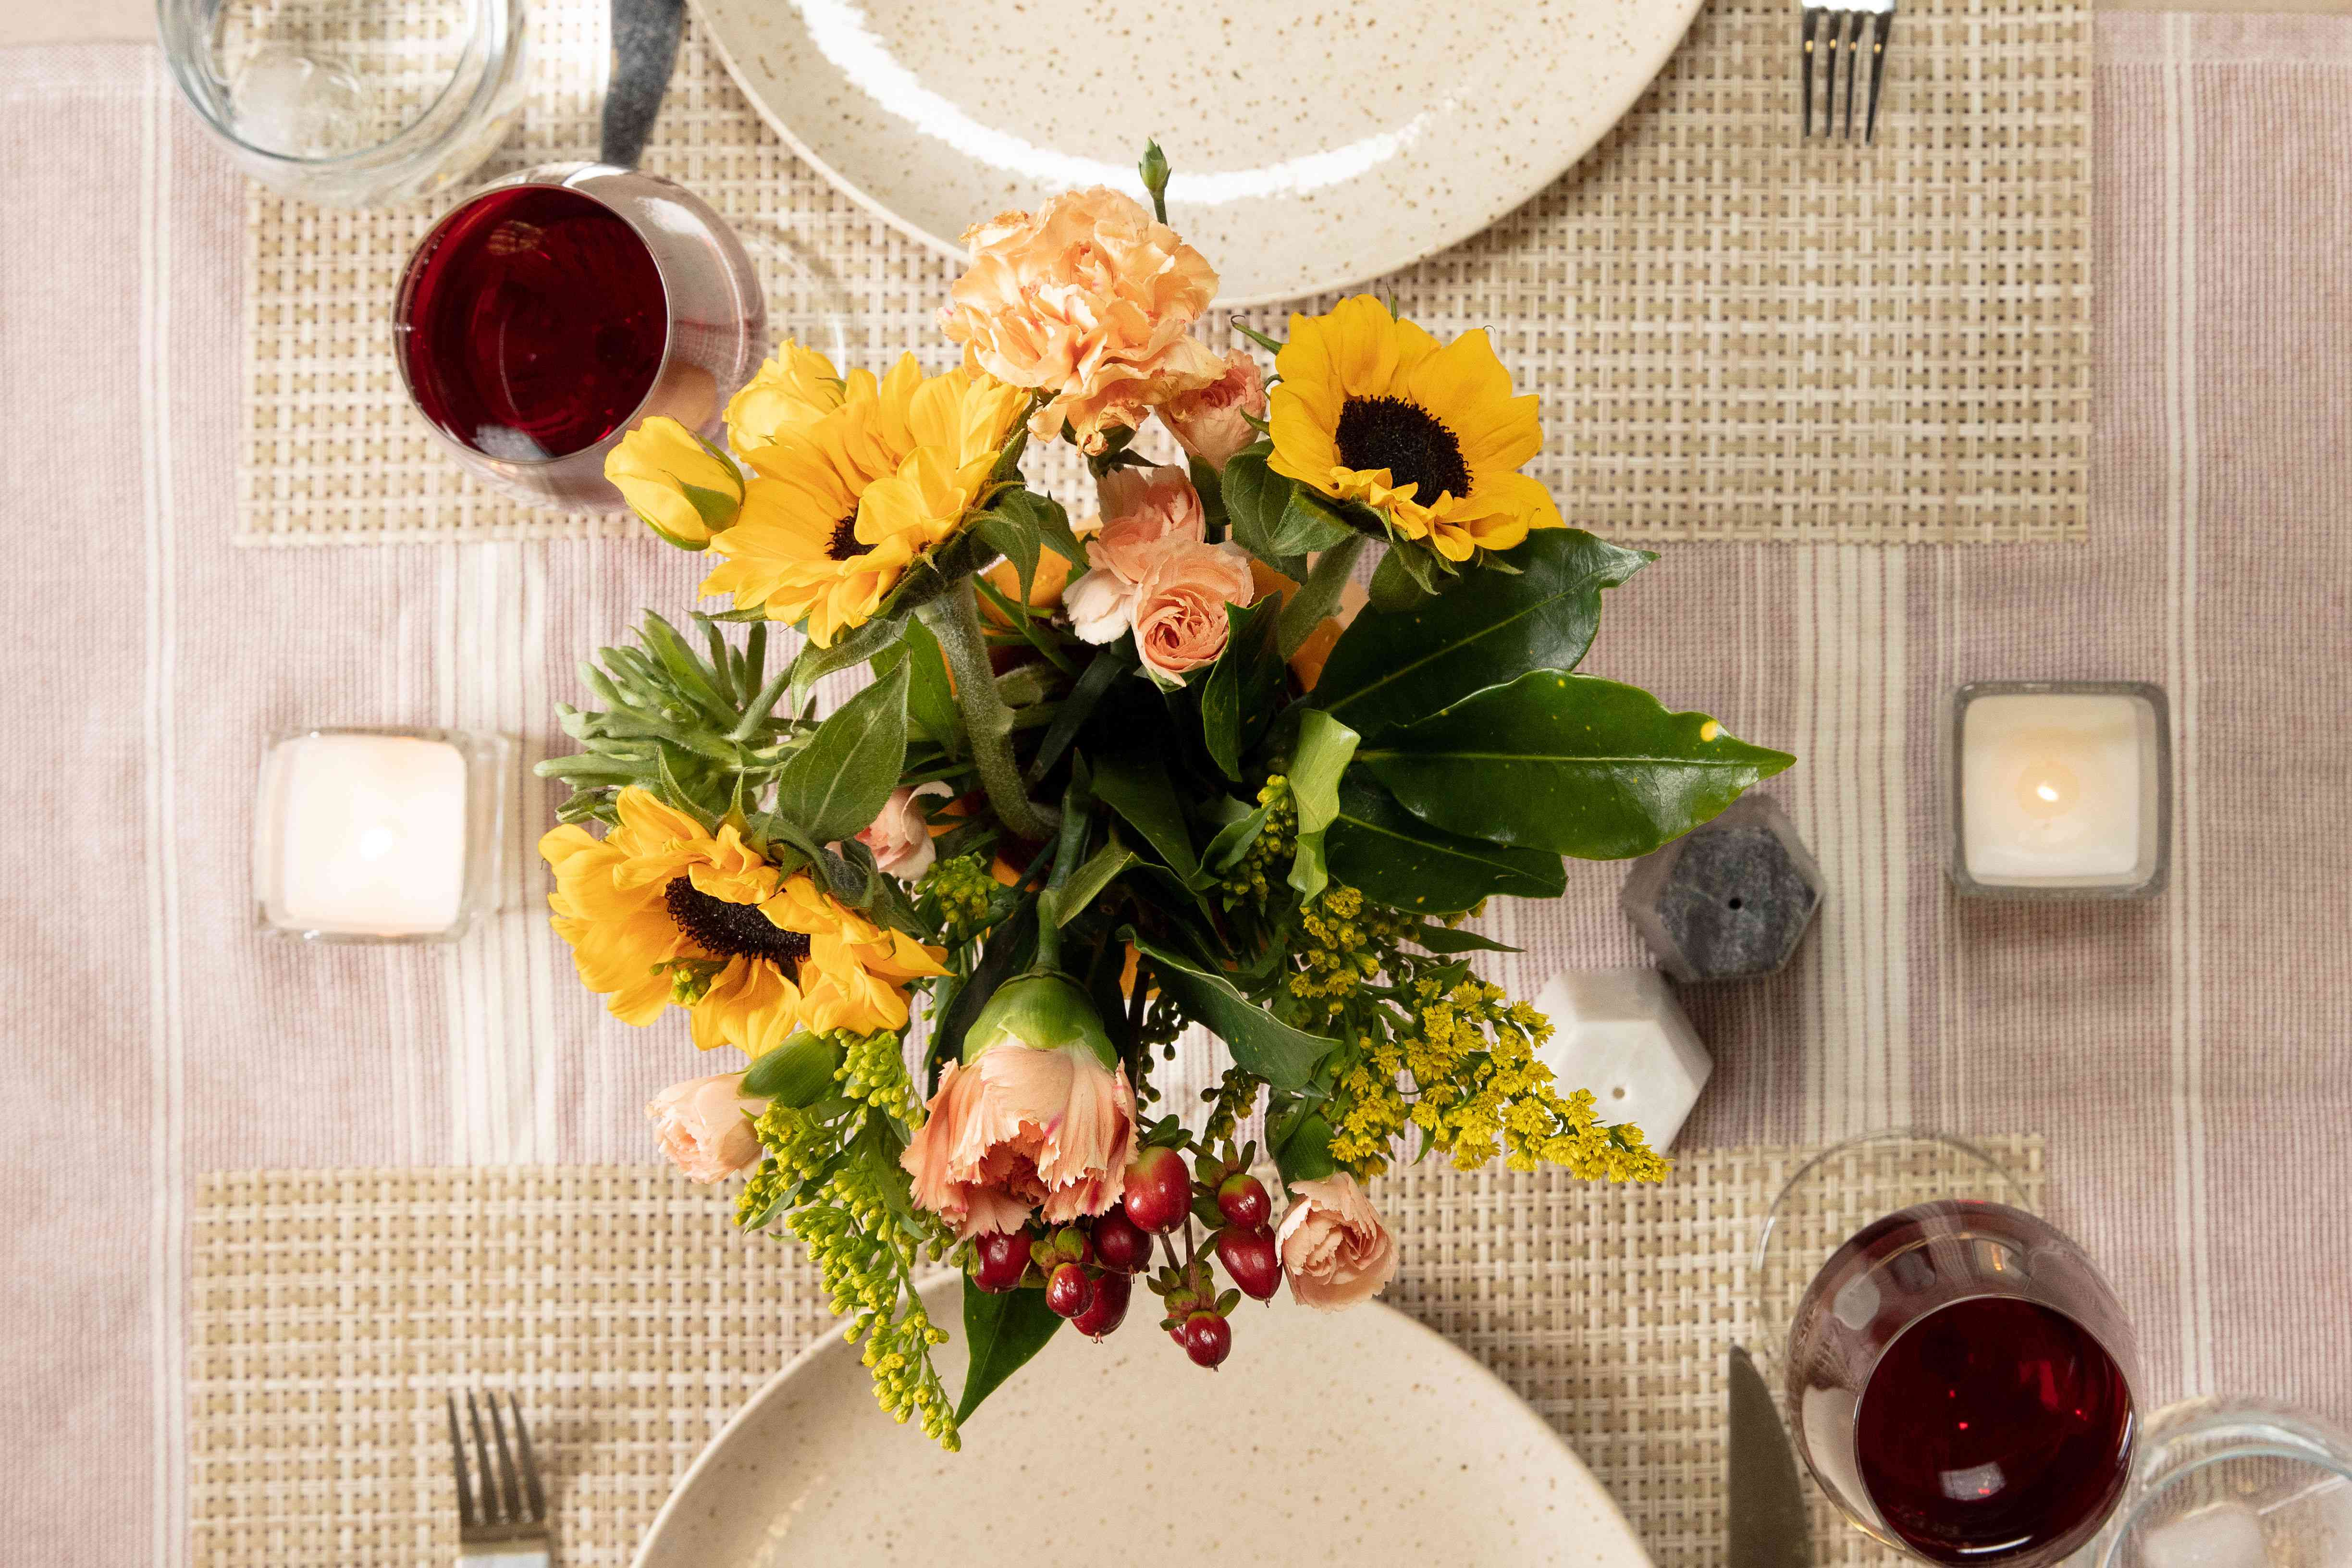 a gourd vase used as a centerpiece